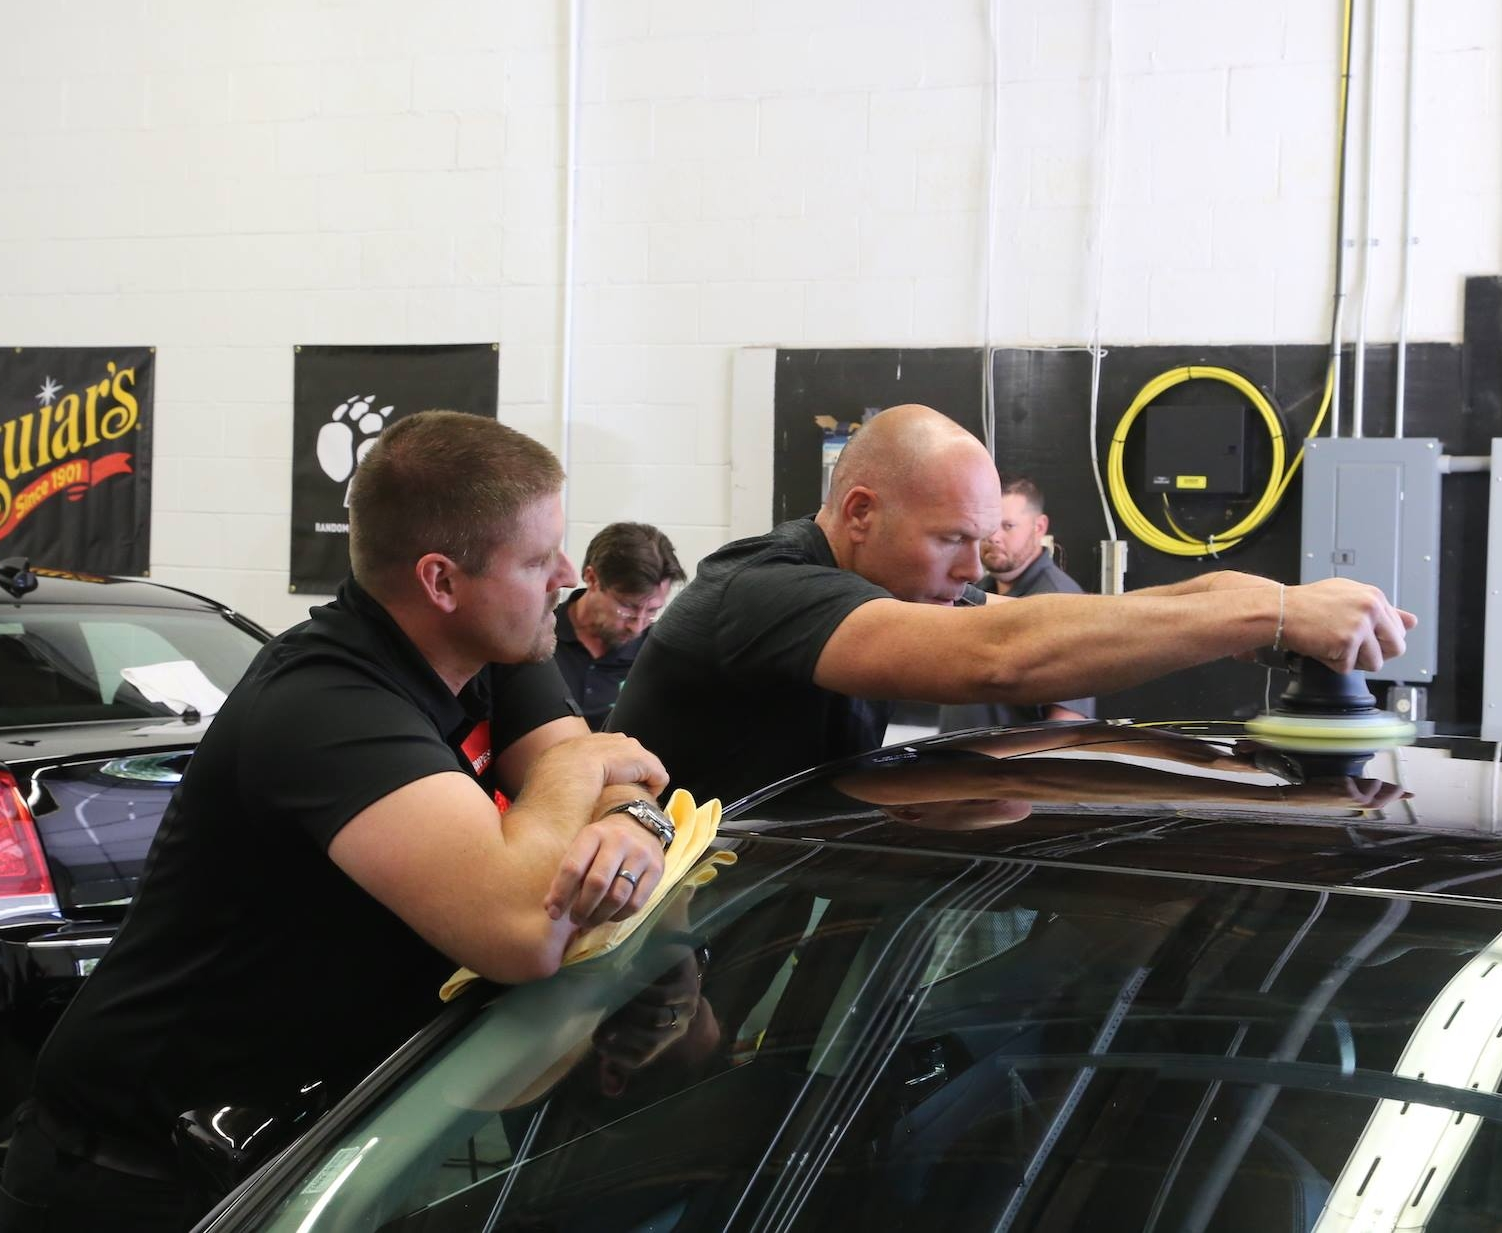 Brad McRae (owner) training with Rupes and Meguiars in 2017